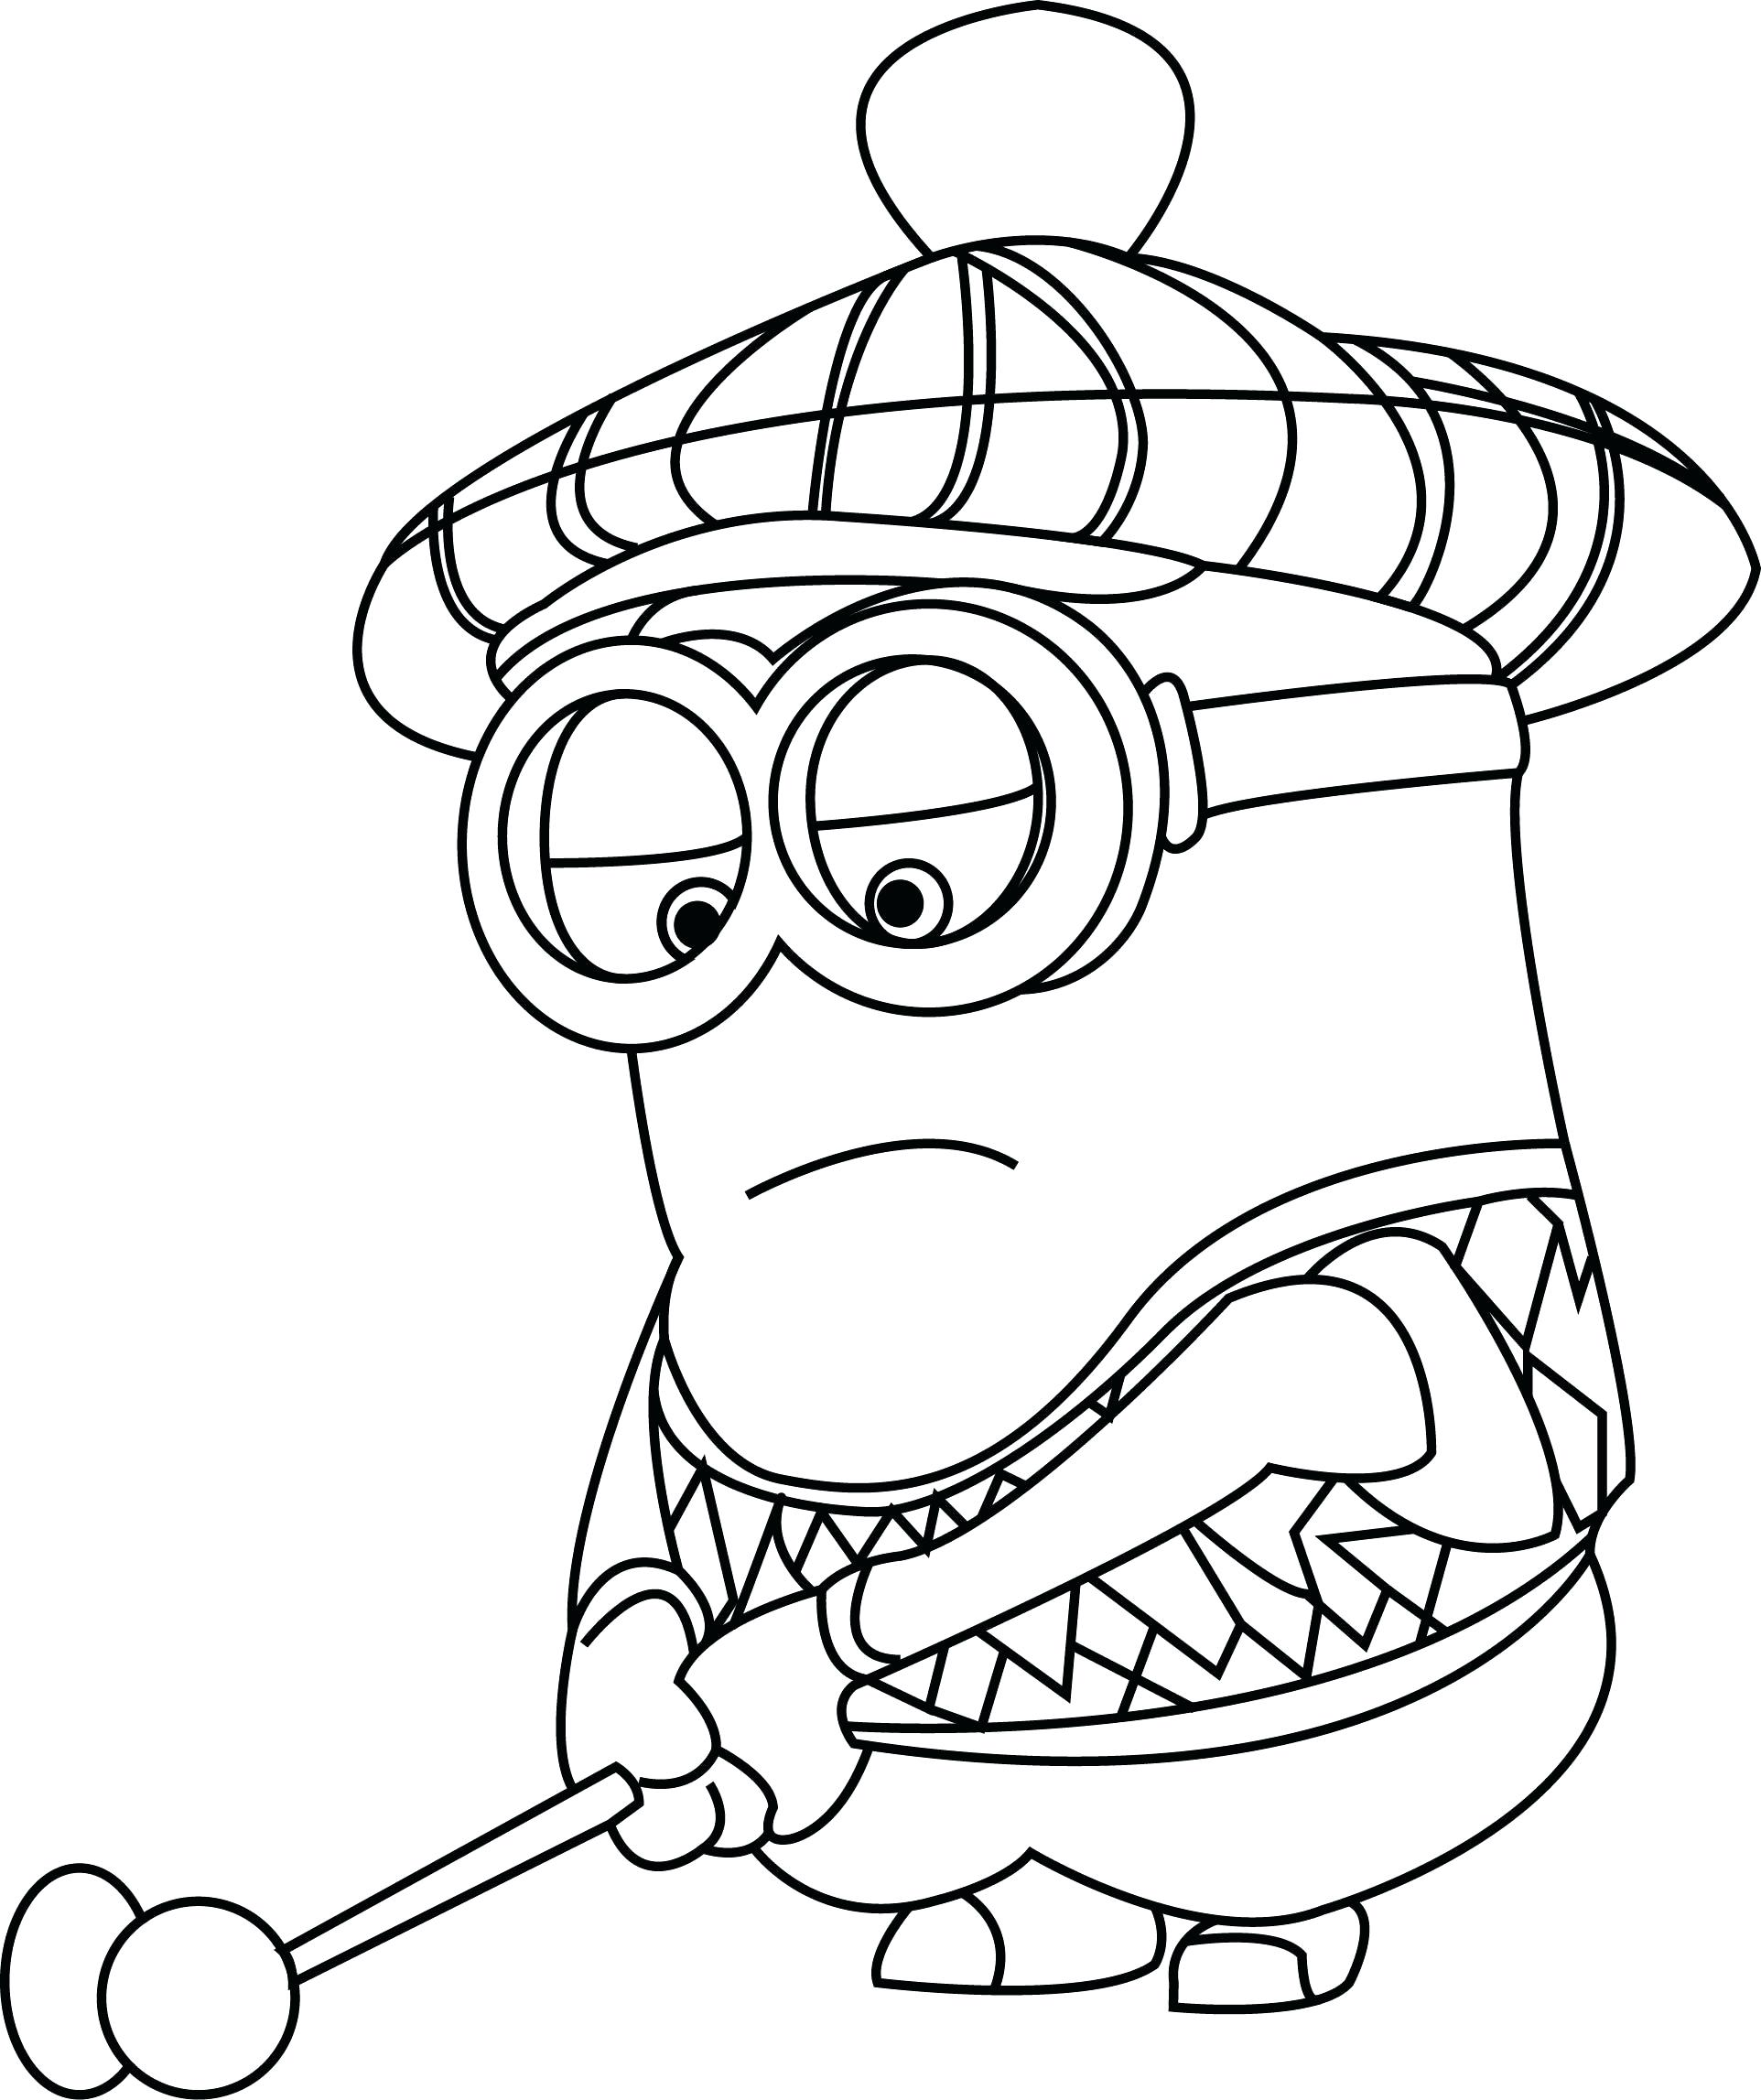 Evil Minion Drawing at GetDrawings | Free download